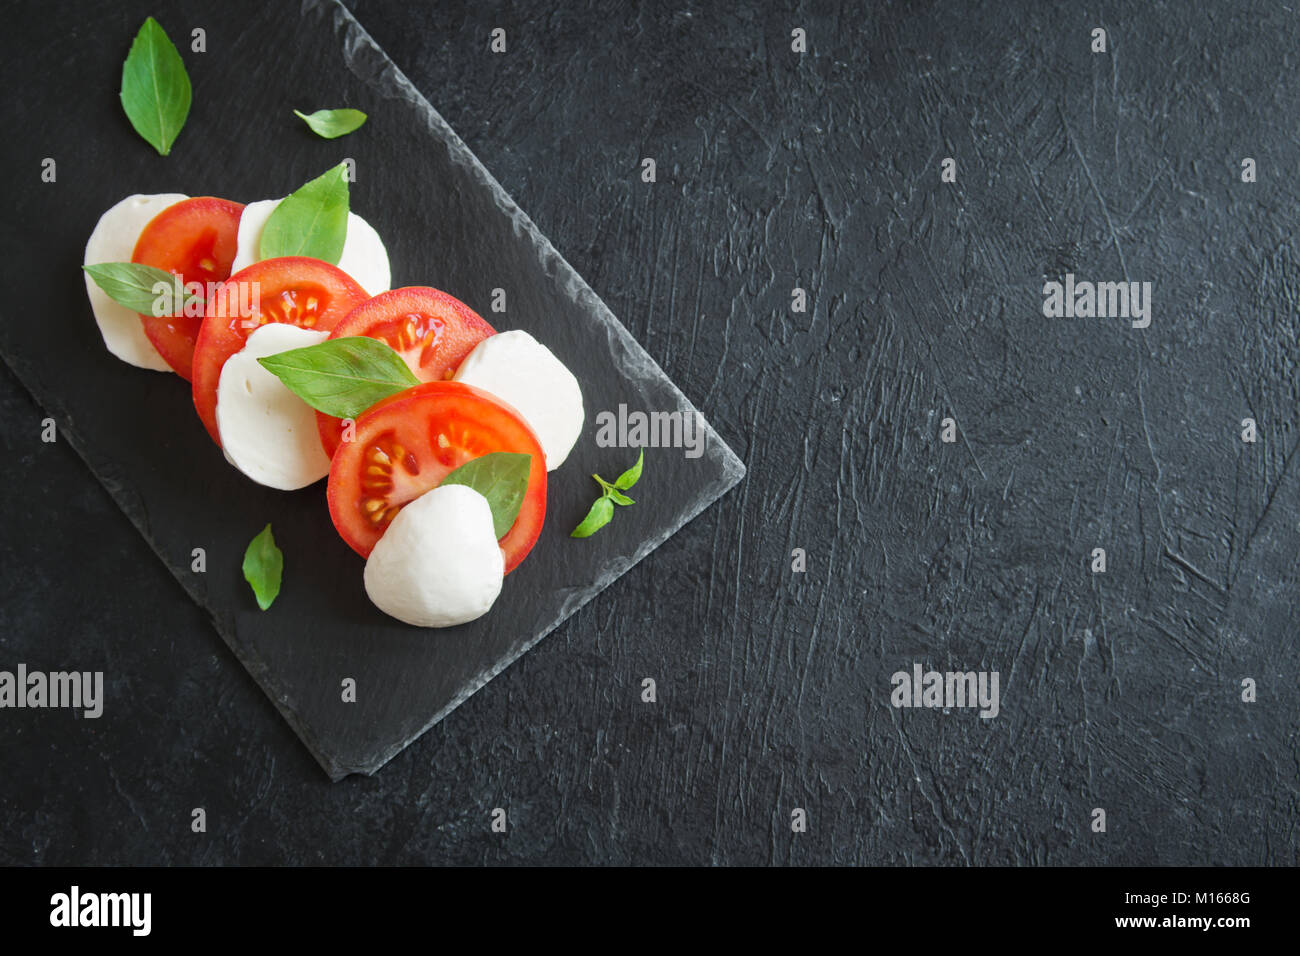 Traditional Italian Caprese Salad - sliced tomatoes, mozzarella cheese and basil on dark stone background, top view, - Stock Image